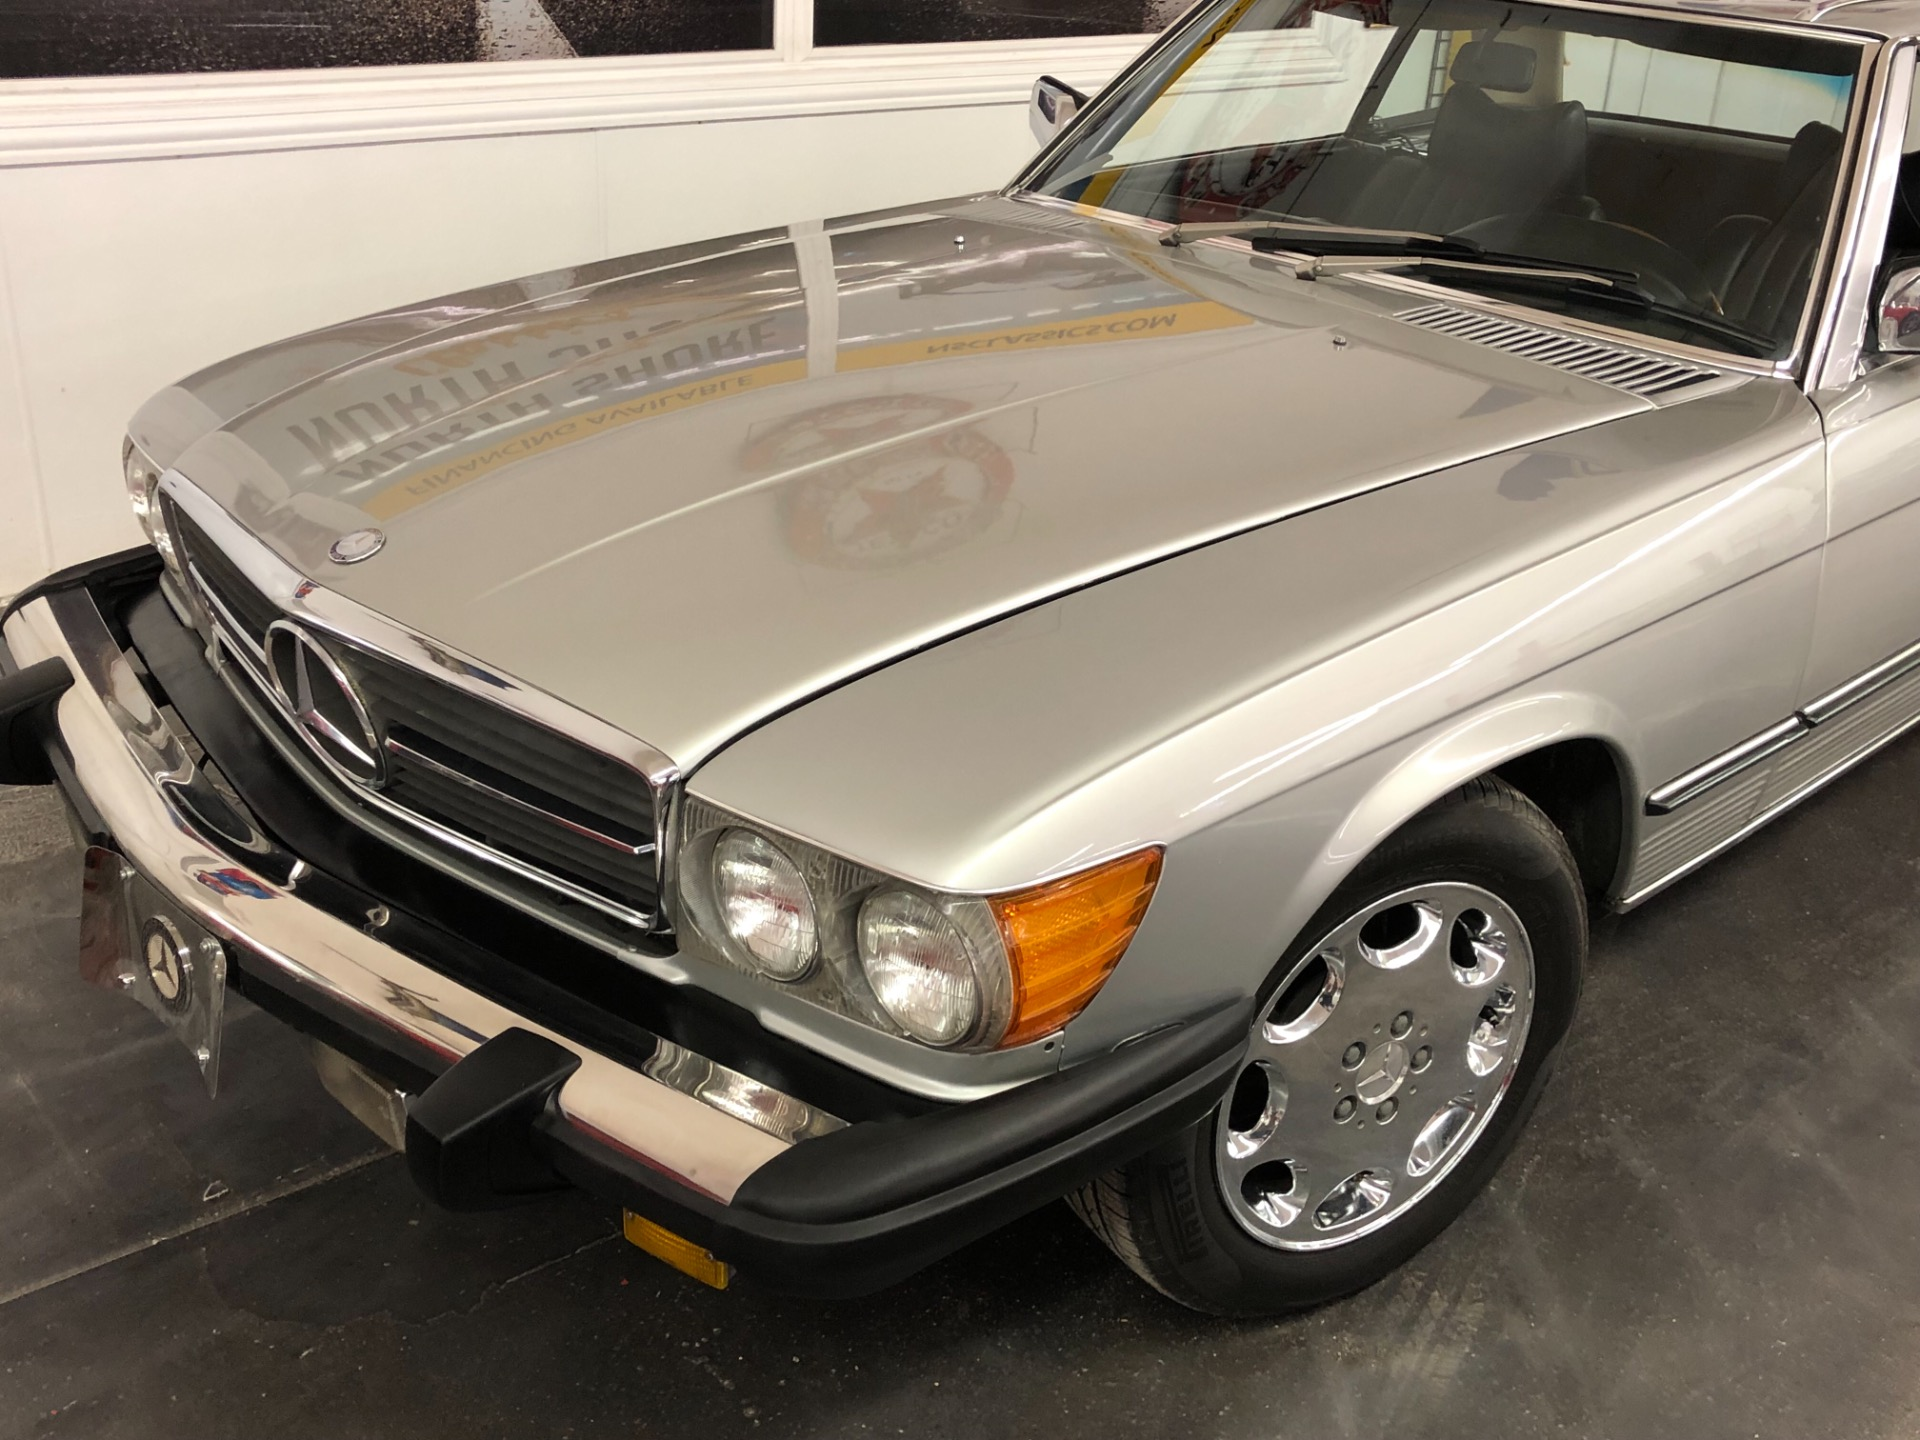 Used 1977 Mercedes Benz 450SL -ROADSTER FROM ARIZONA-SUPER NICE- | Mundelein, IL